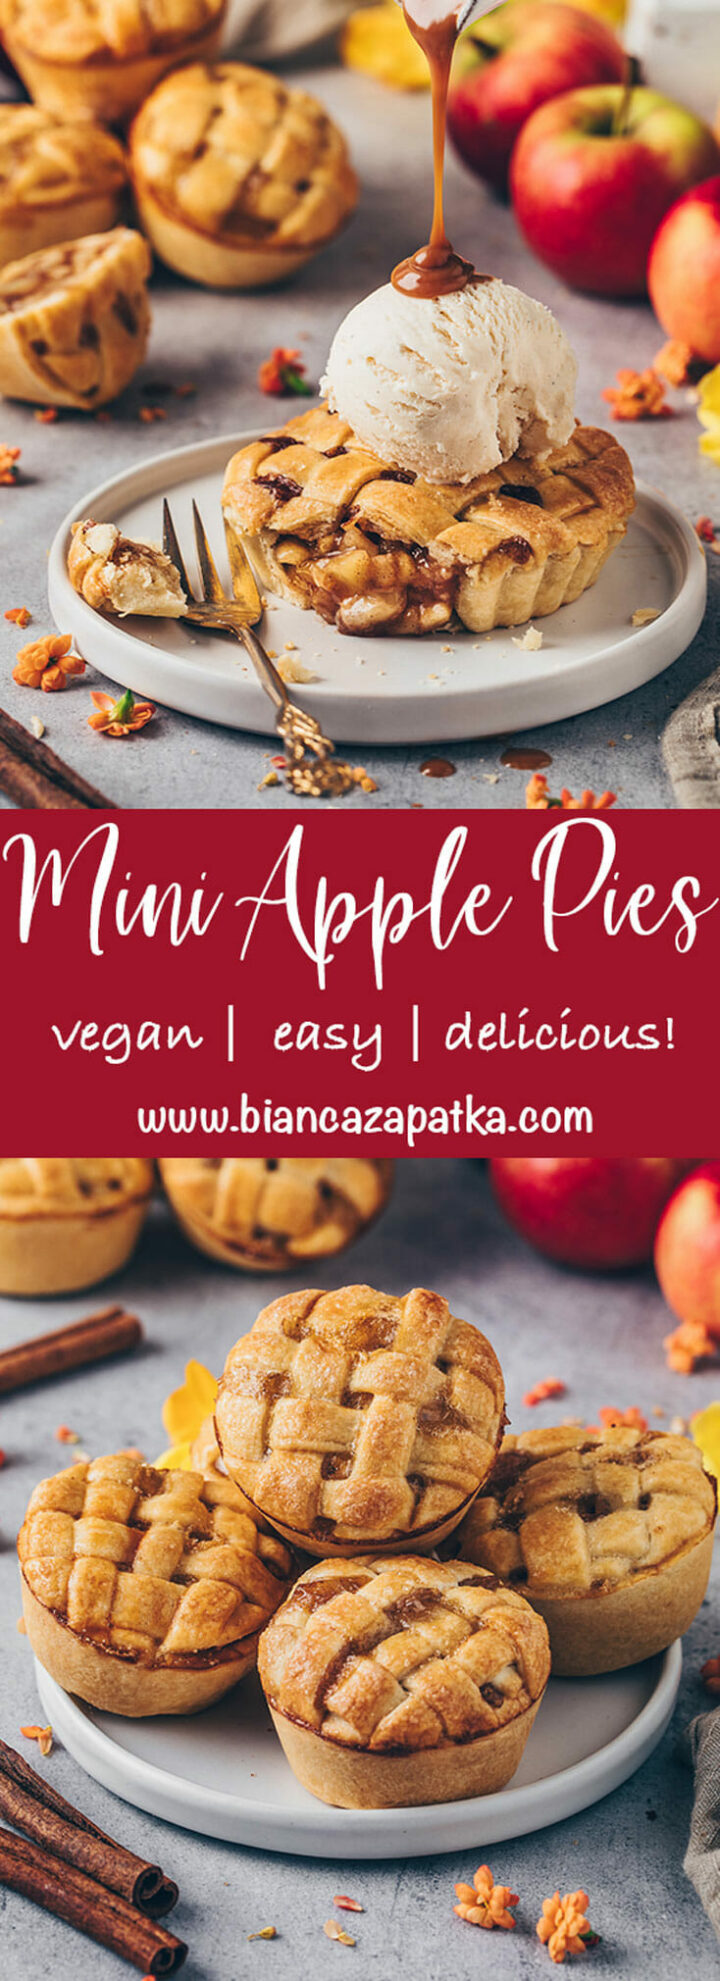 mini apple pies (apple cinnamon muffins tarts with caramel sauce)